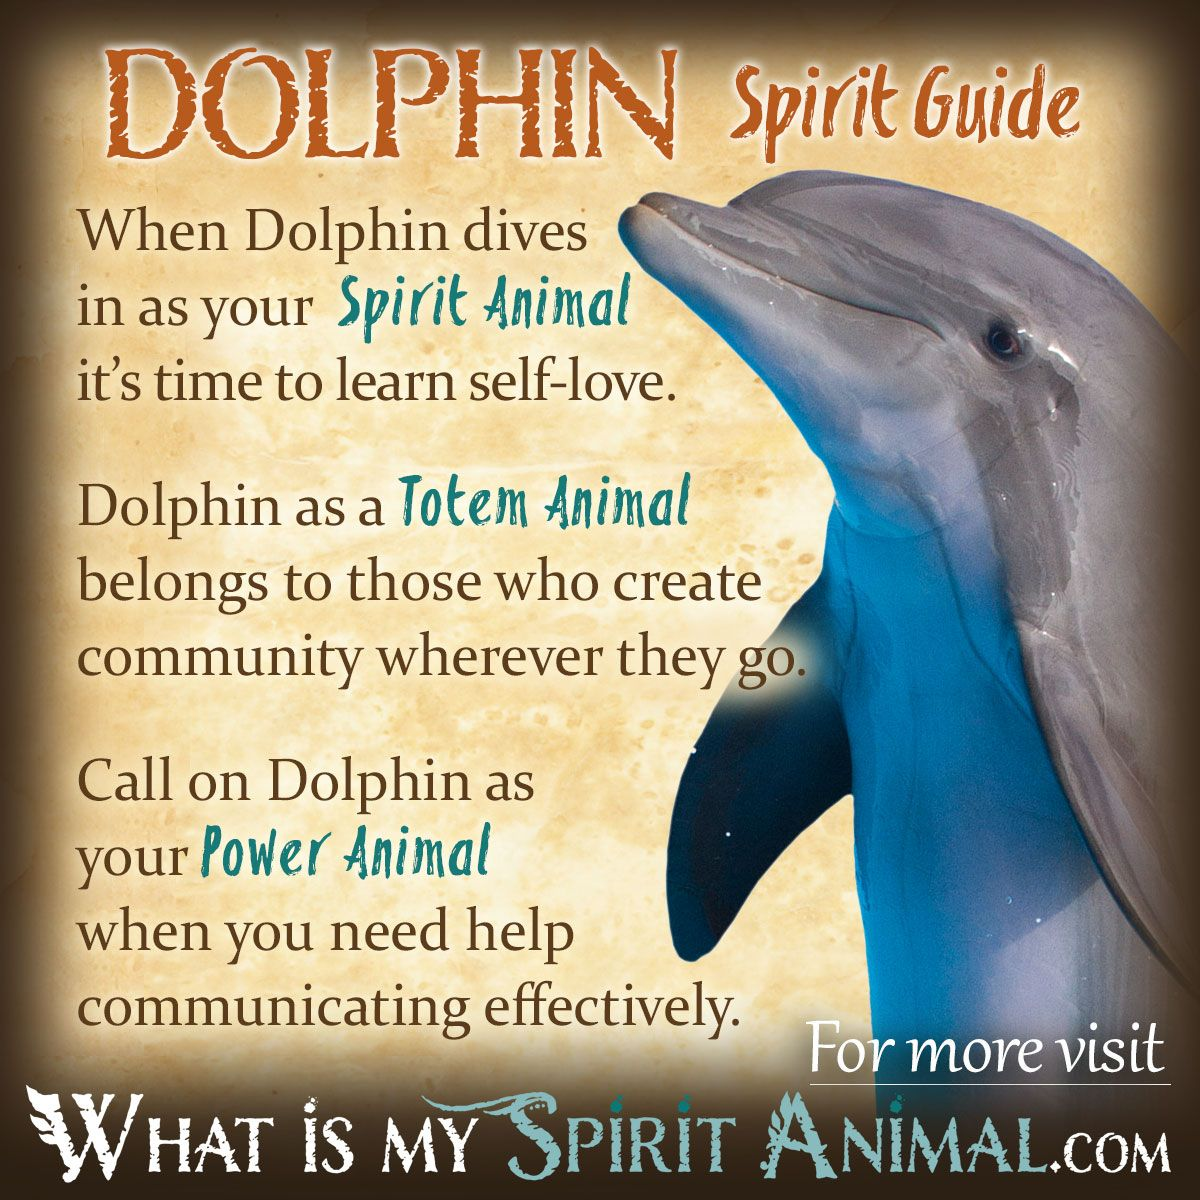 Dolphin Symbolism & Meaning | wicca | Spirit animal totem ... - photo#38